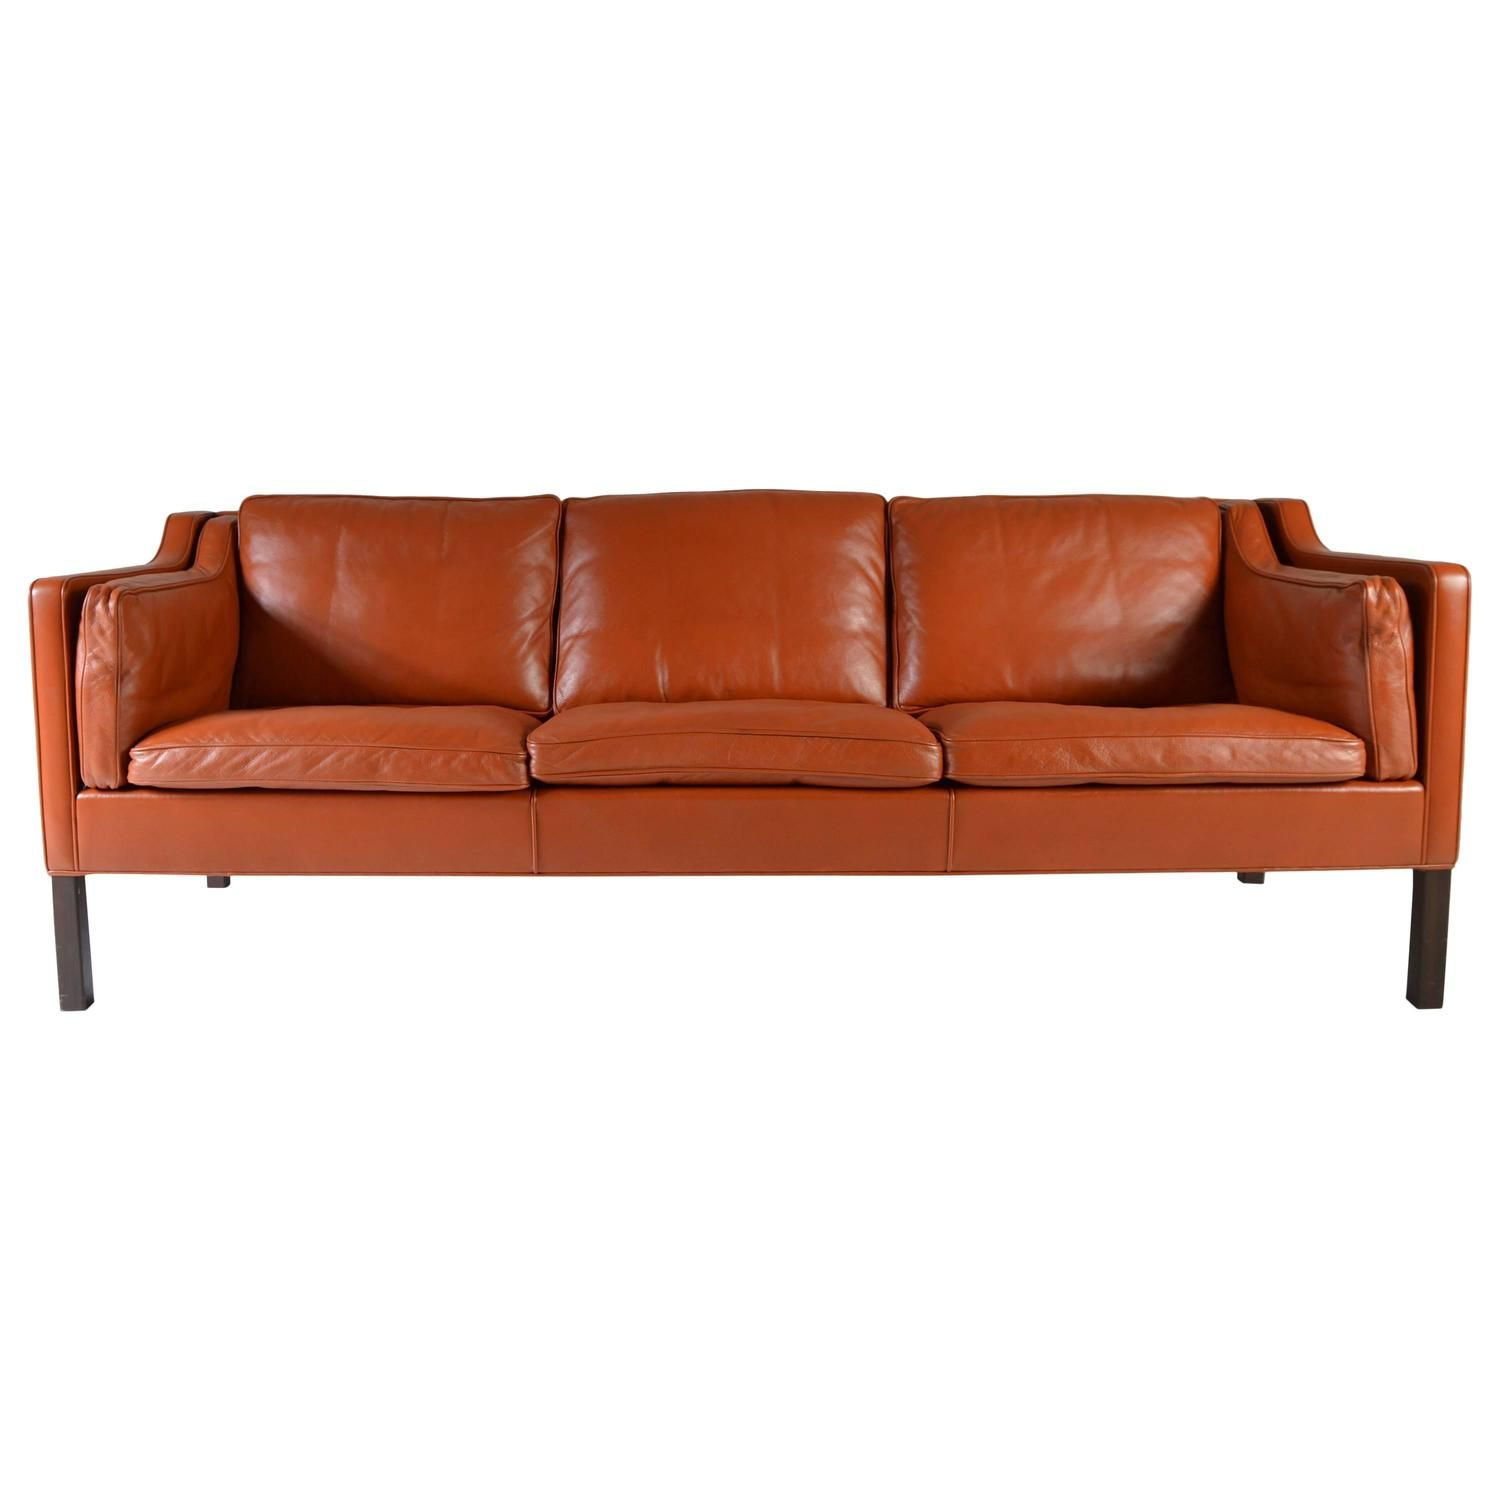 Cognac Leather Sofa By Børge Mogensen For Fredericia Stolefabrik